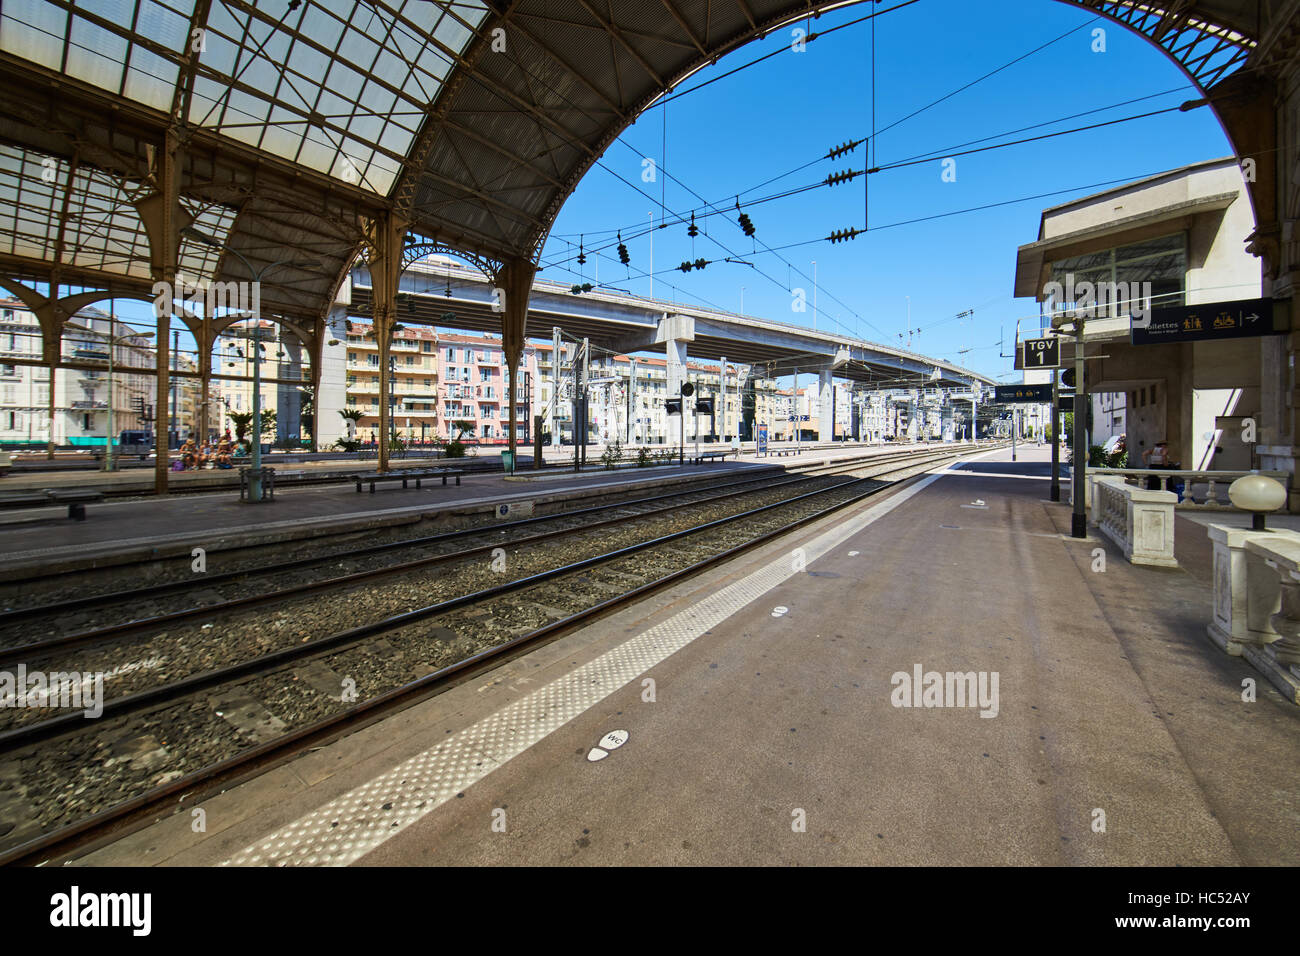 Panorama of the railway station in the center, sunny day, blue sky, a lot of tourists, Rails  under glass a roof - Stock Image